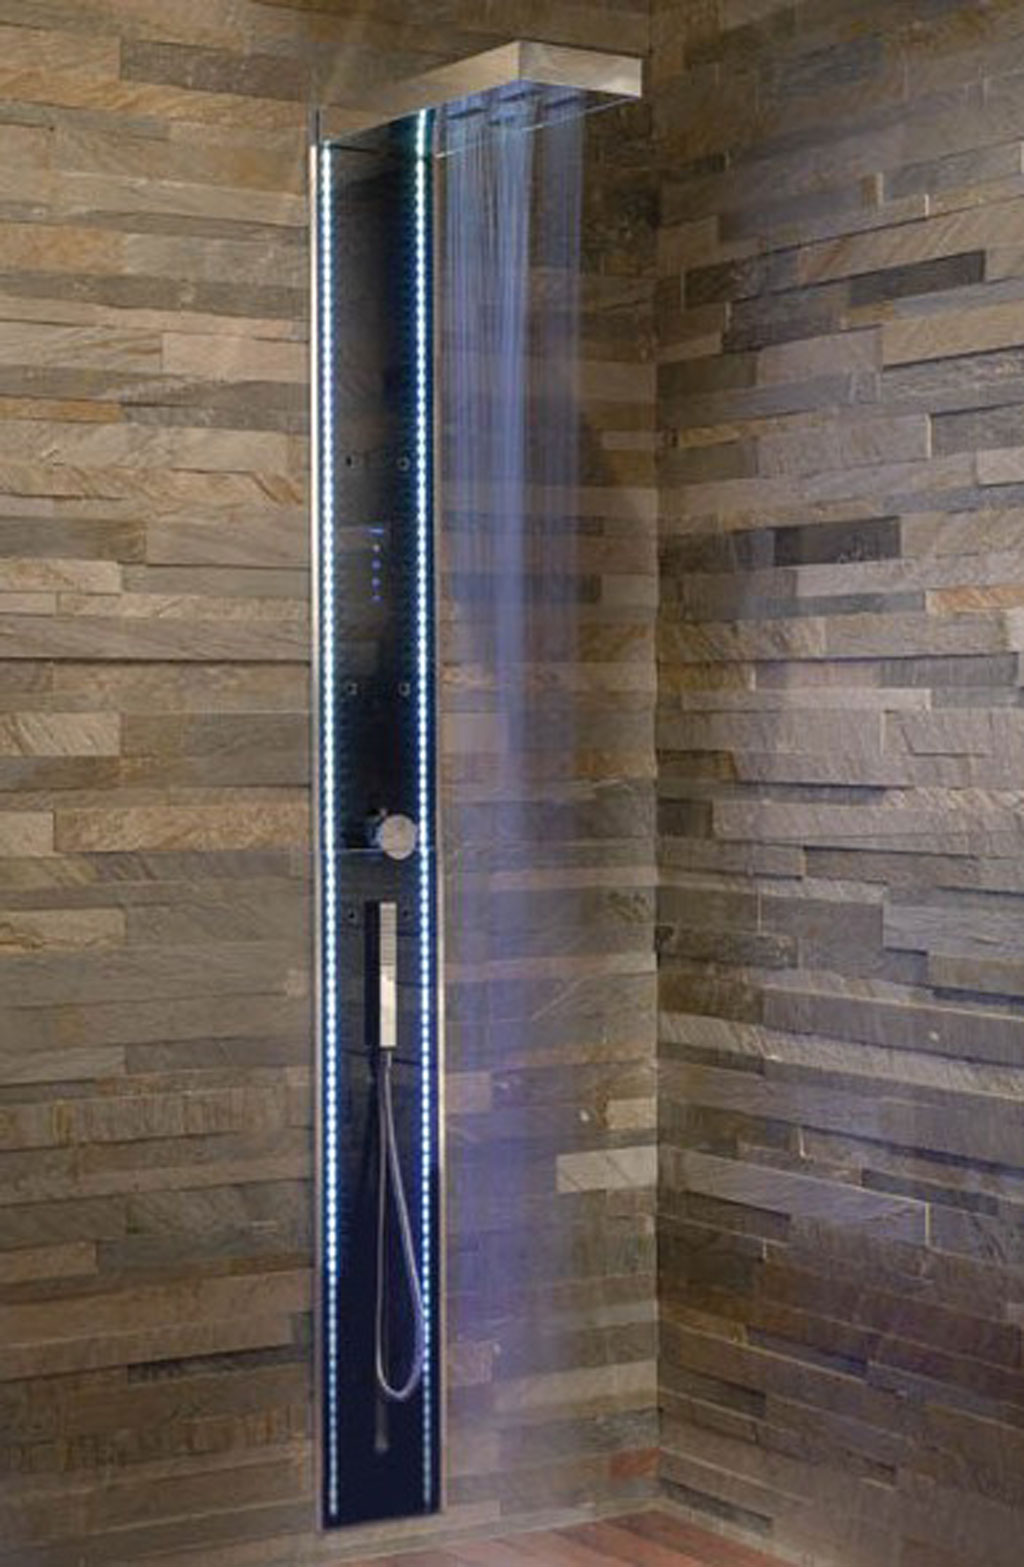 32 good ideas and pictures of modern bathroom tiles texture Bathroom tile pictures gallery